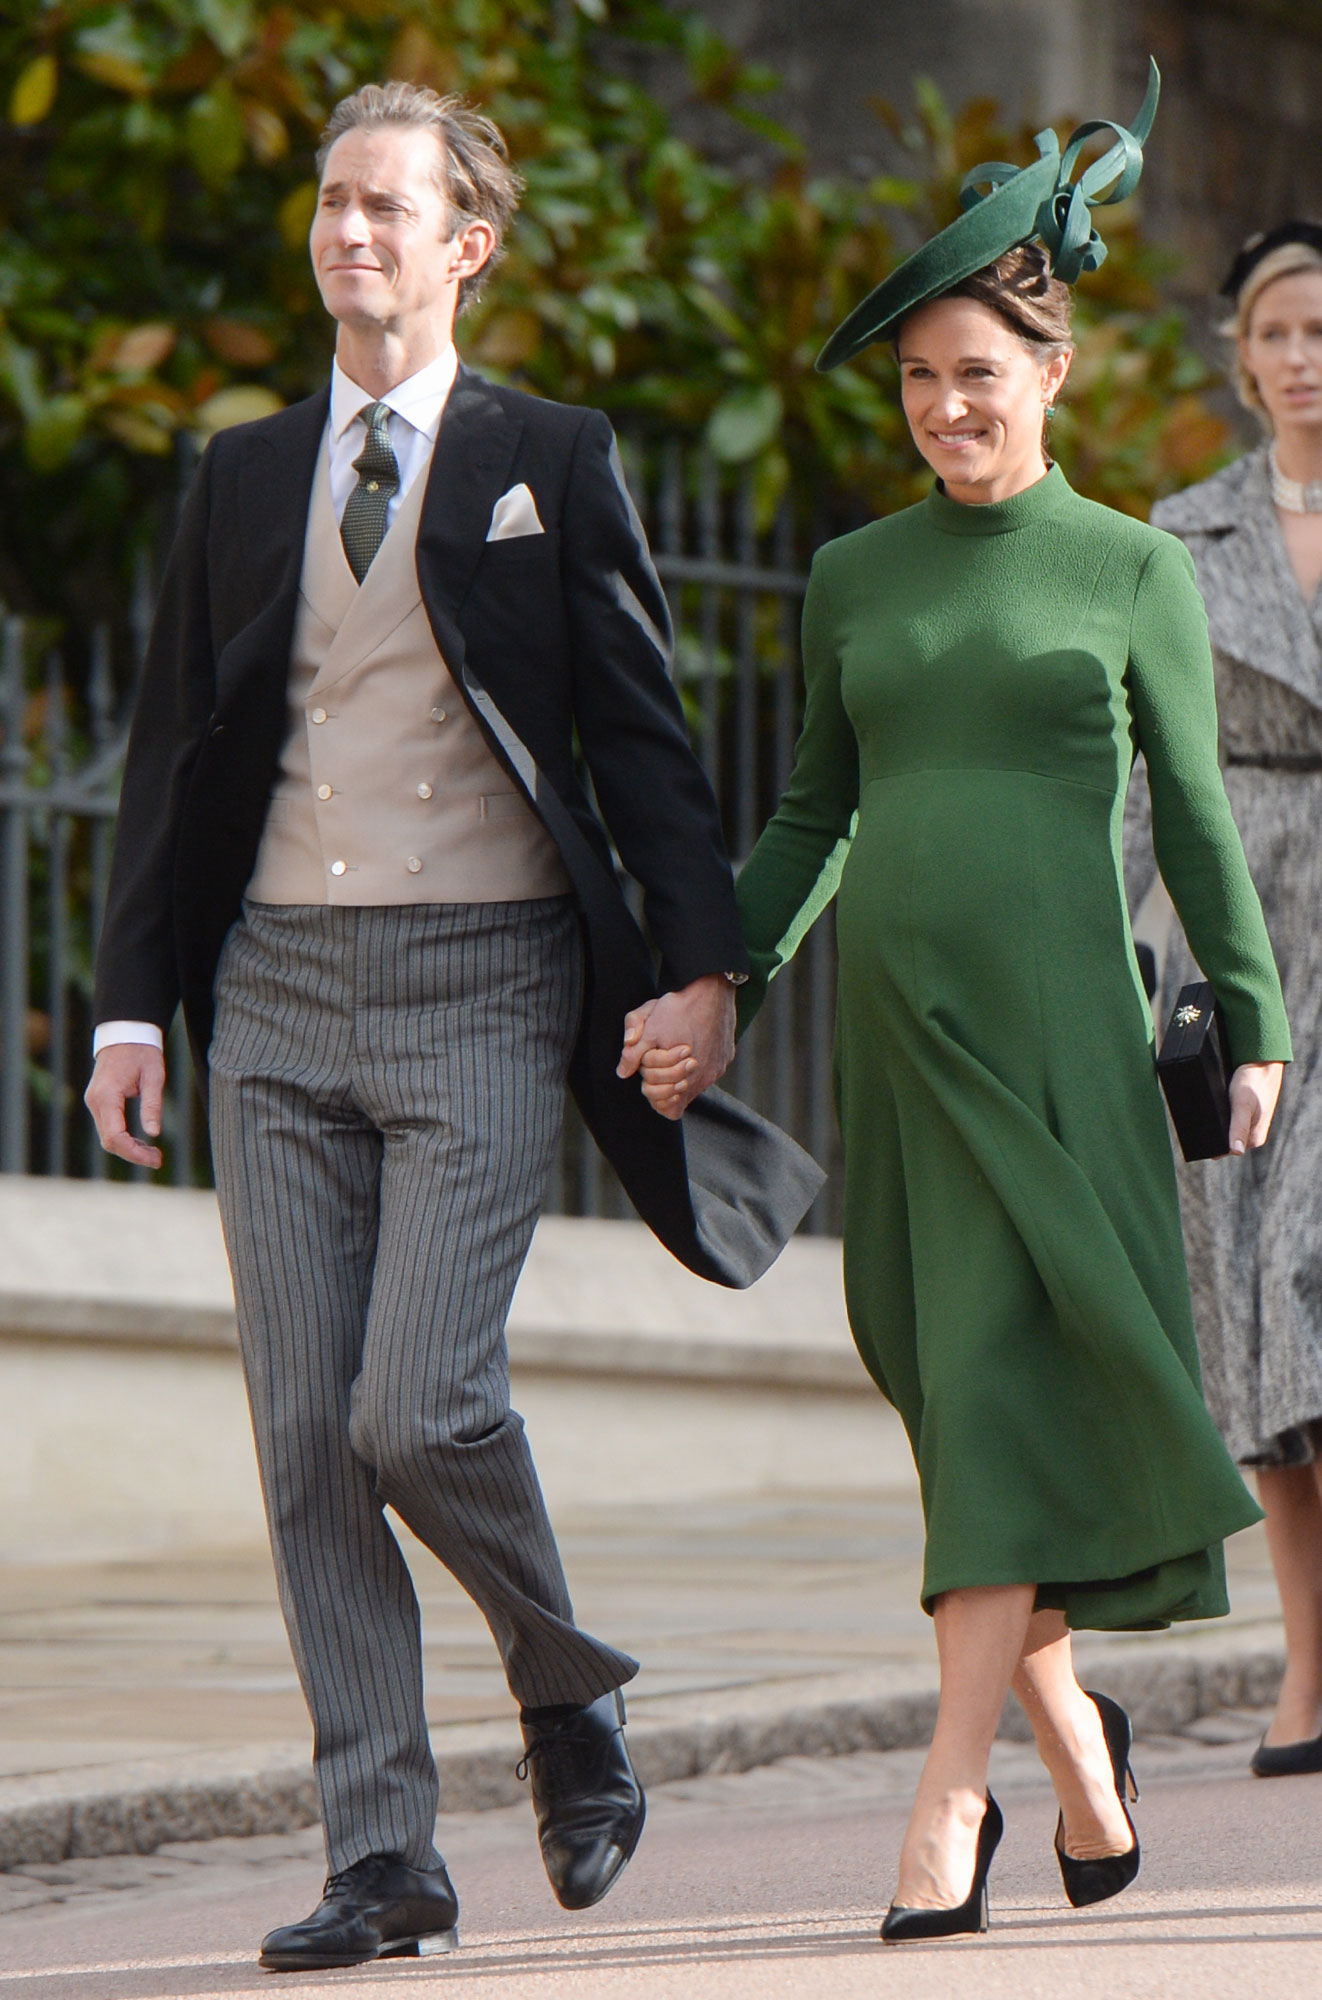 Even More Royal Baby Buzz! Pregnant Pippa Middleton Checks Into Hospital with Overnight Bags pippa-middleton-1